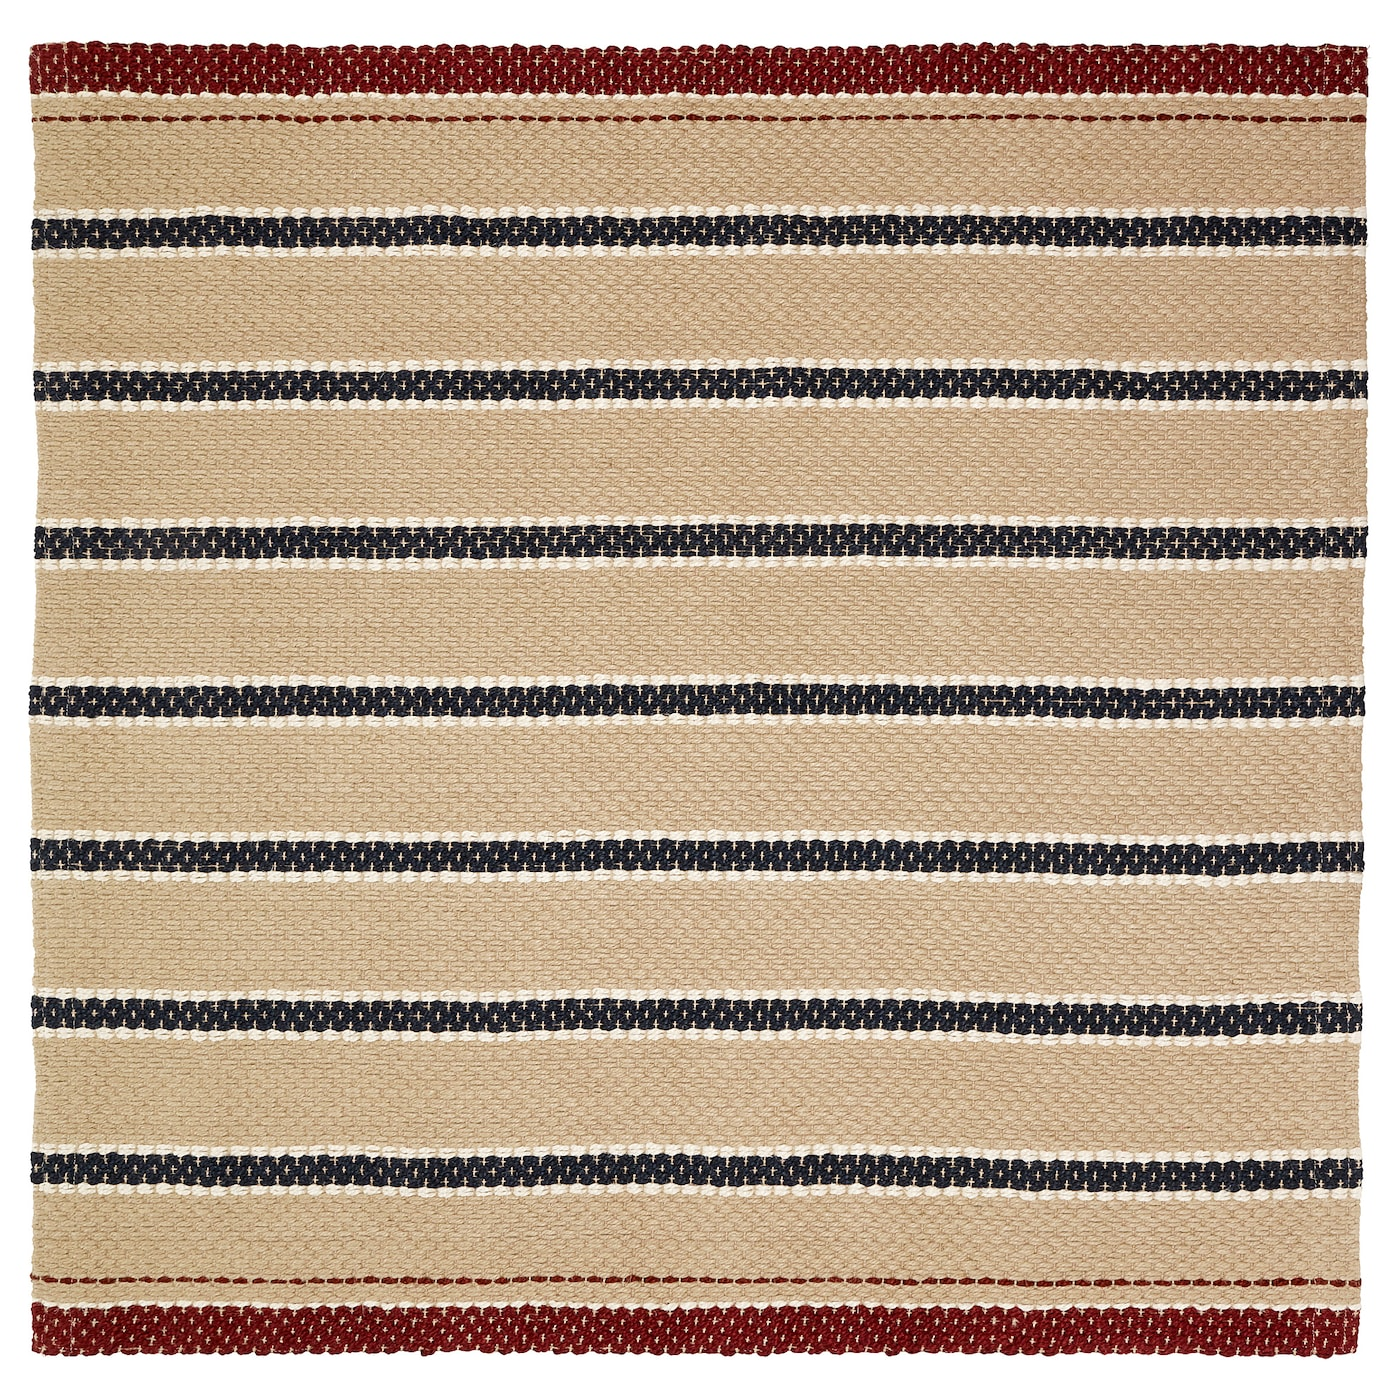 IKEA RÖDHUS rug, flatwoven Jute is a durable and recyclable material with natural colour variations.